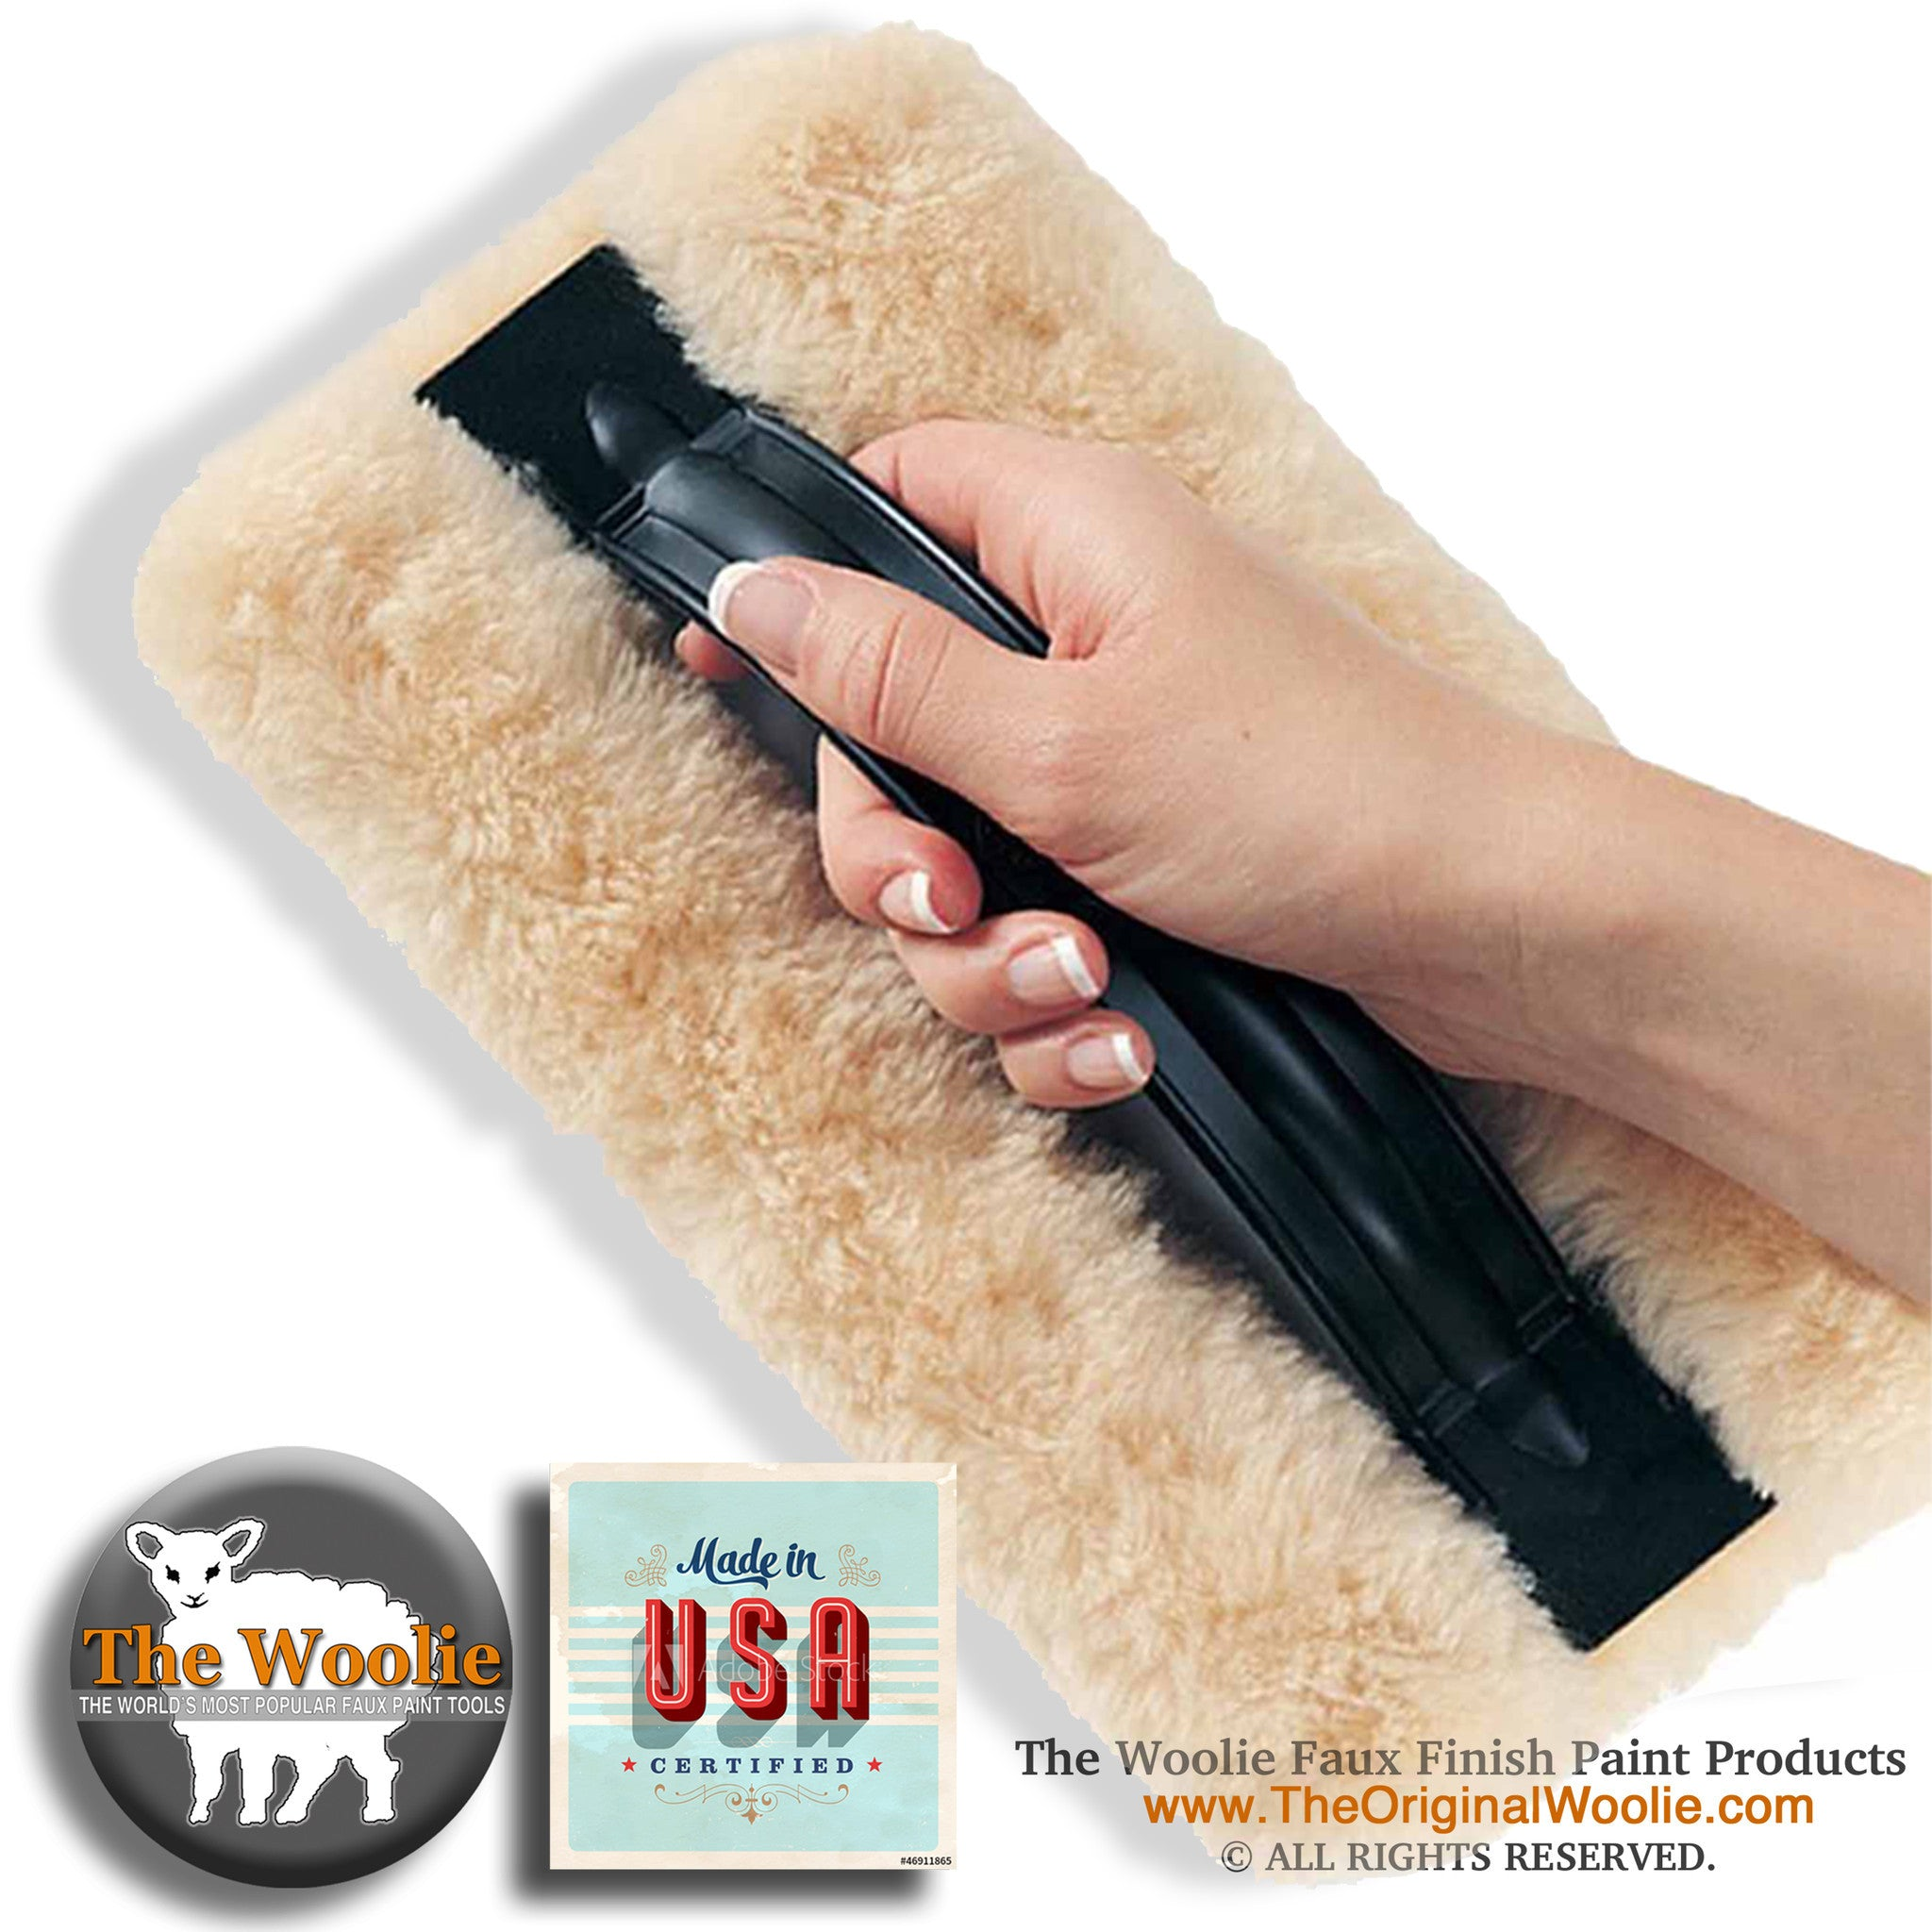 The Woolie faux finish sheepskin paint pad Easiest faux glazing and fastest paint techniques for walls rooms floors house 5d974d72 5b3f 49d3 bfdf